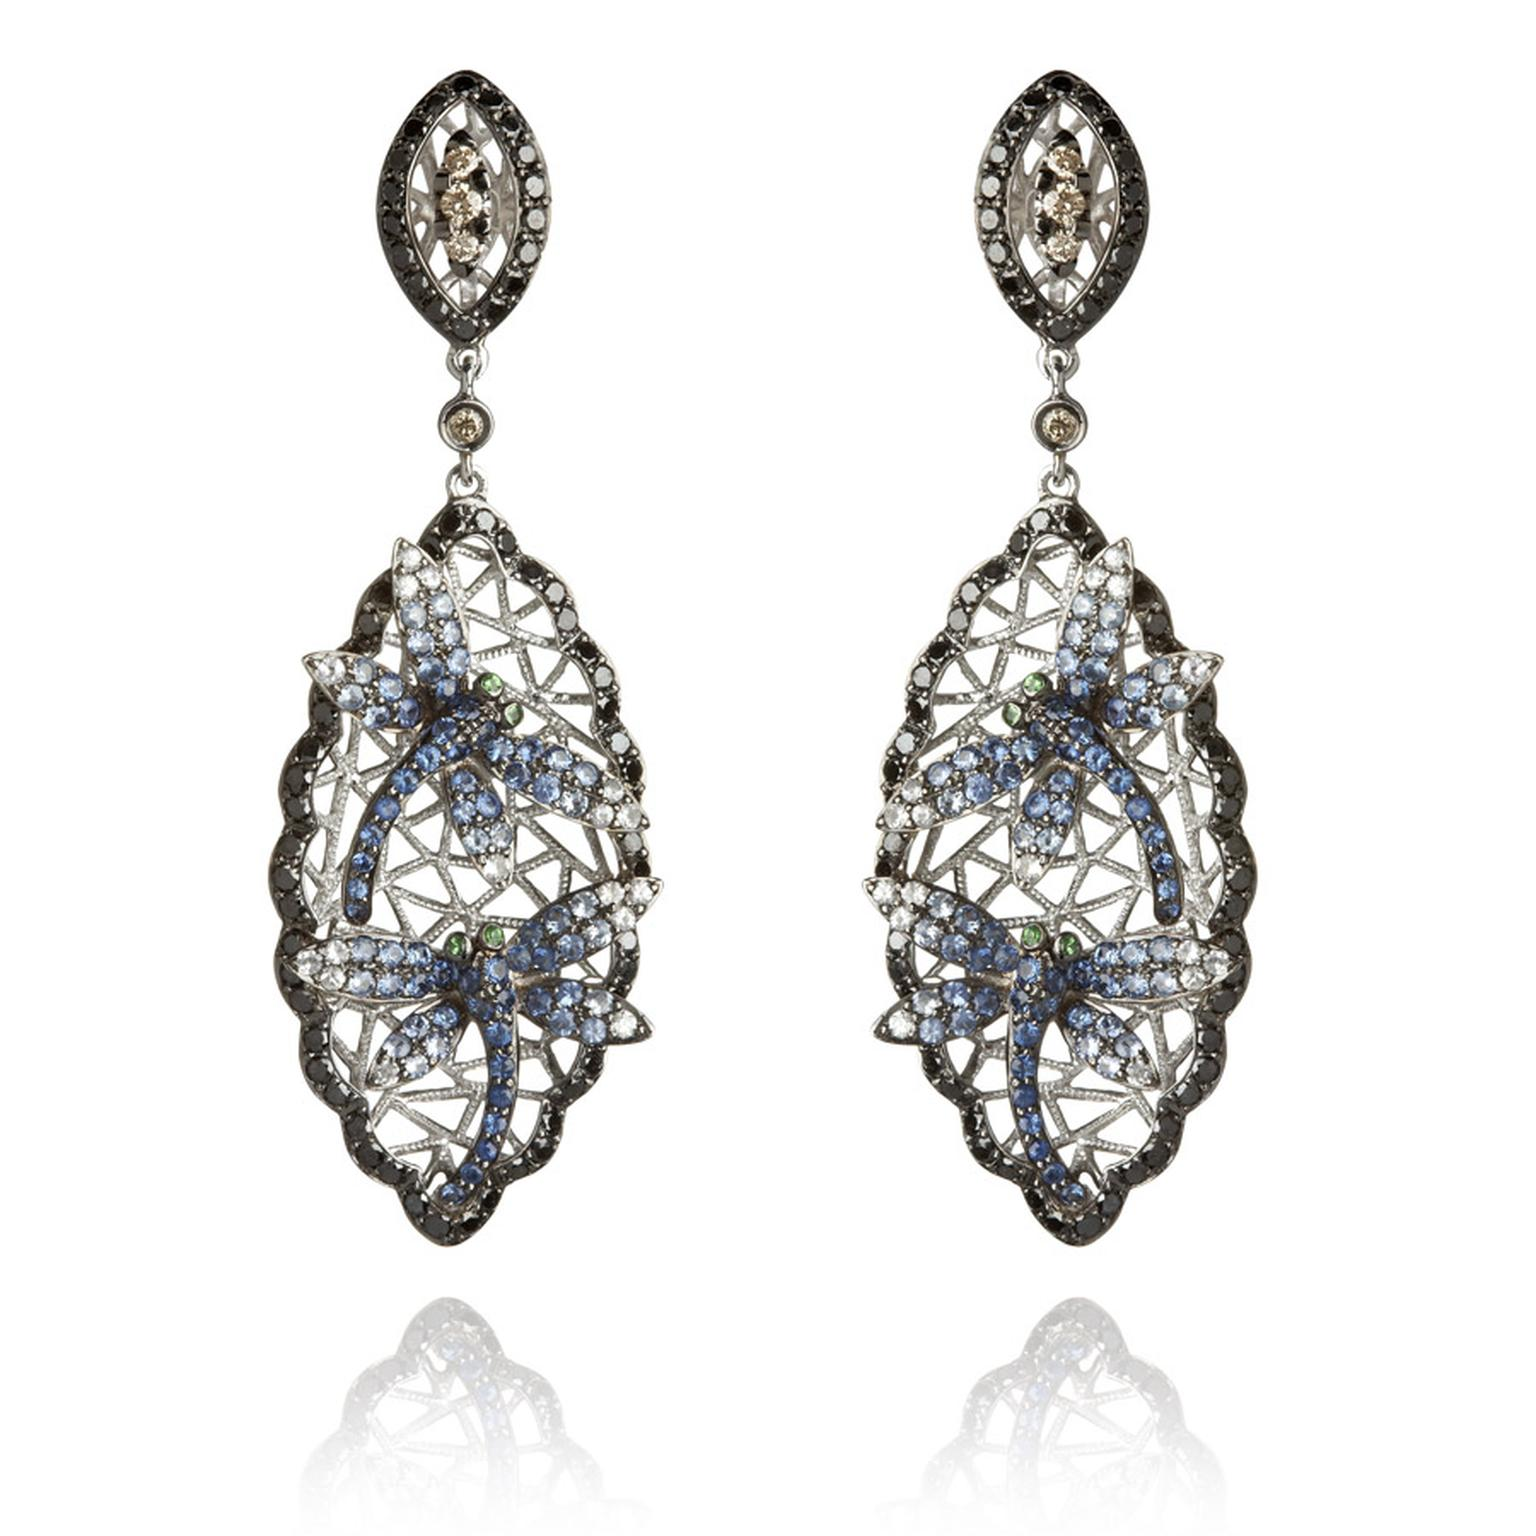 Wendy-Yue-Fantasie-18ct-white-gold--diamond-sapphire-and-garnet-Diving-Dragonfly-earrings-By-Wendy-Yue-for--Annoushka